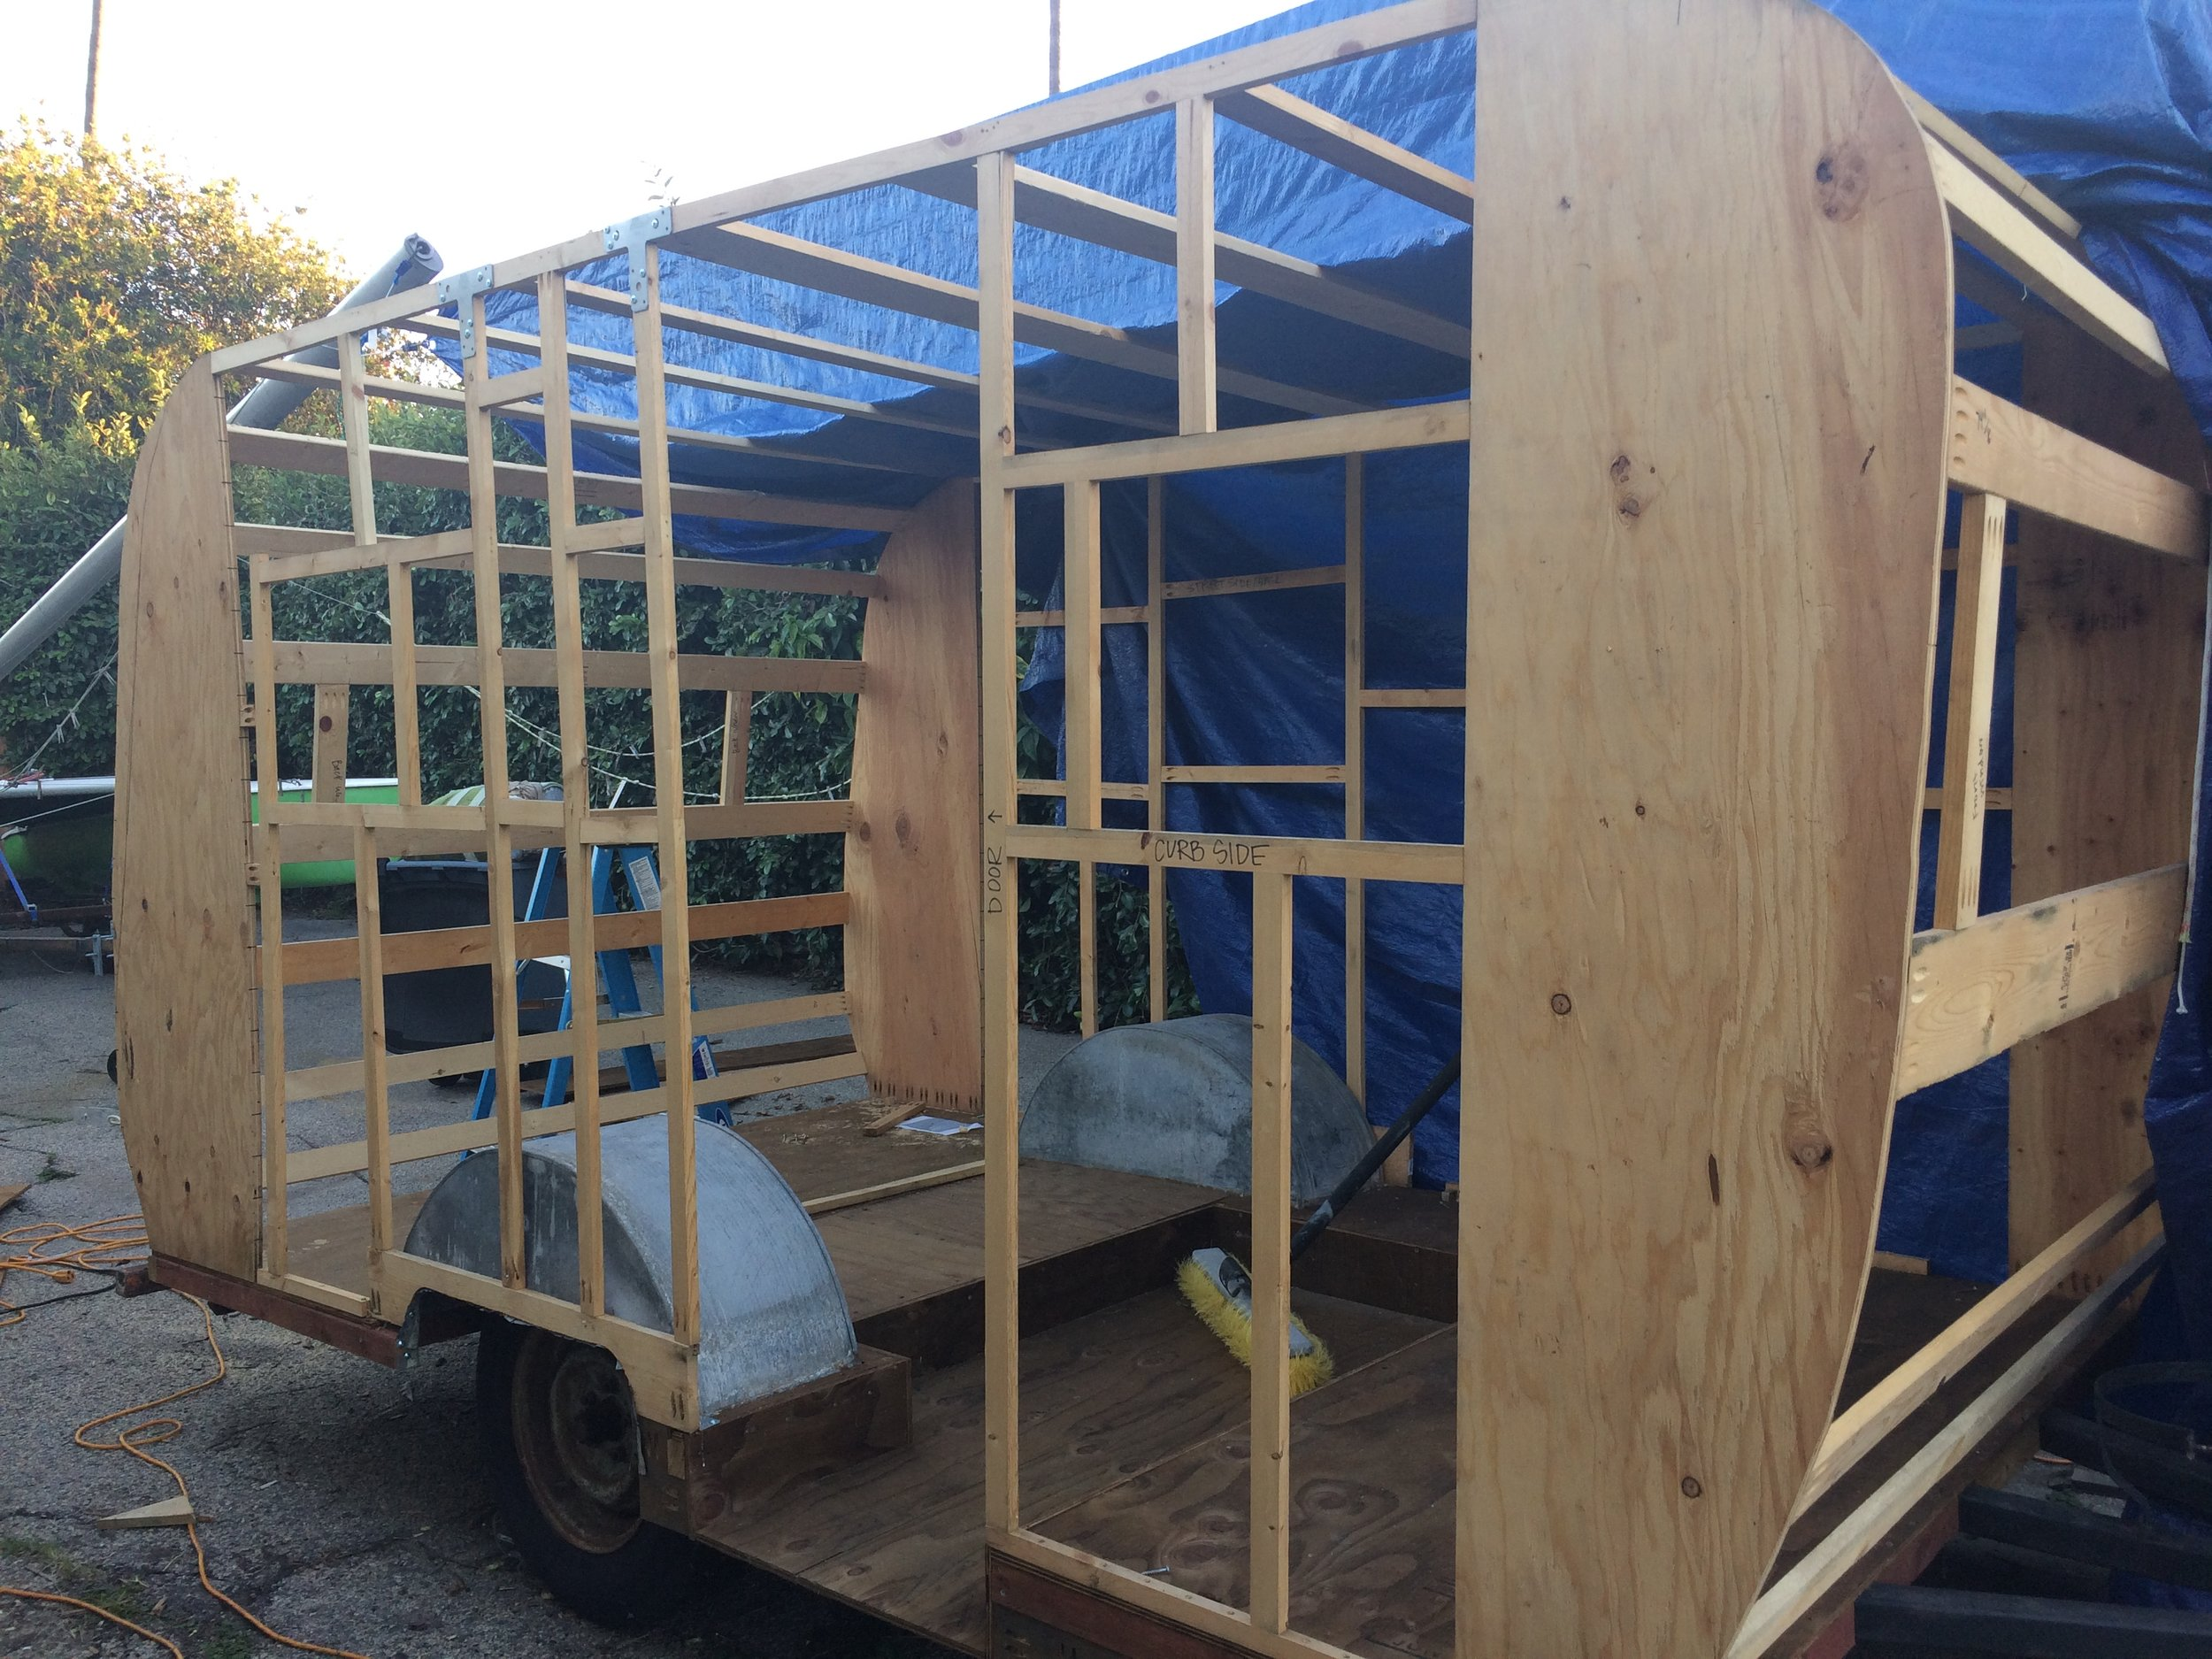 Framing completed! Please excuse the giant blue tarp. It's been raining like crazy here lately and we've rigged up quite an elaborate tent contraption that isn't very easy to remove for pictures